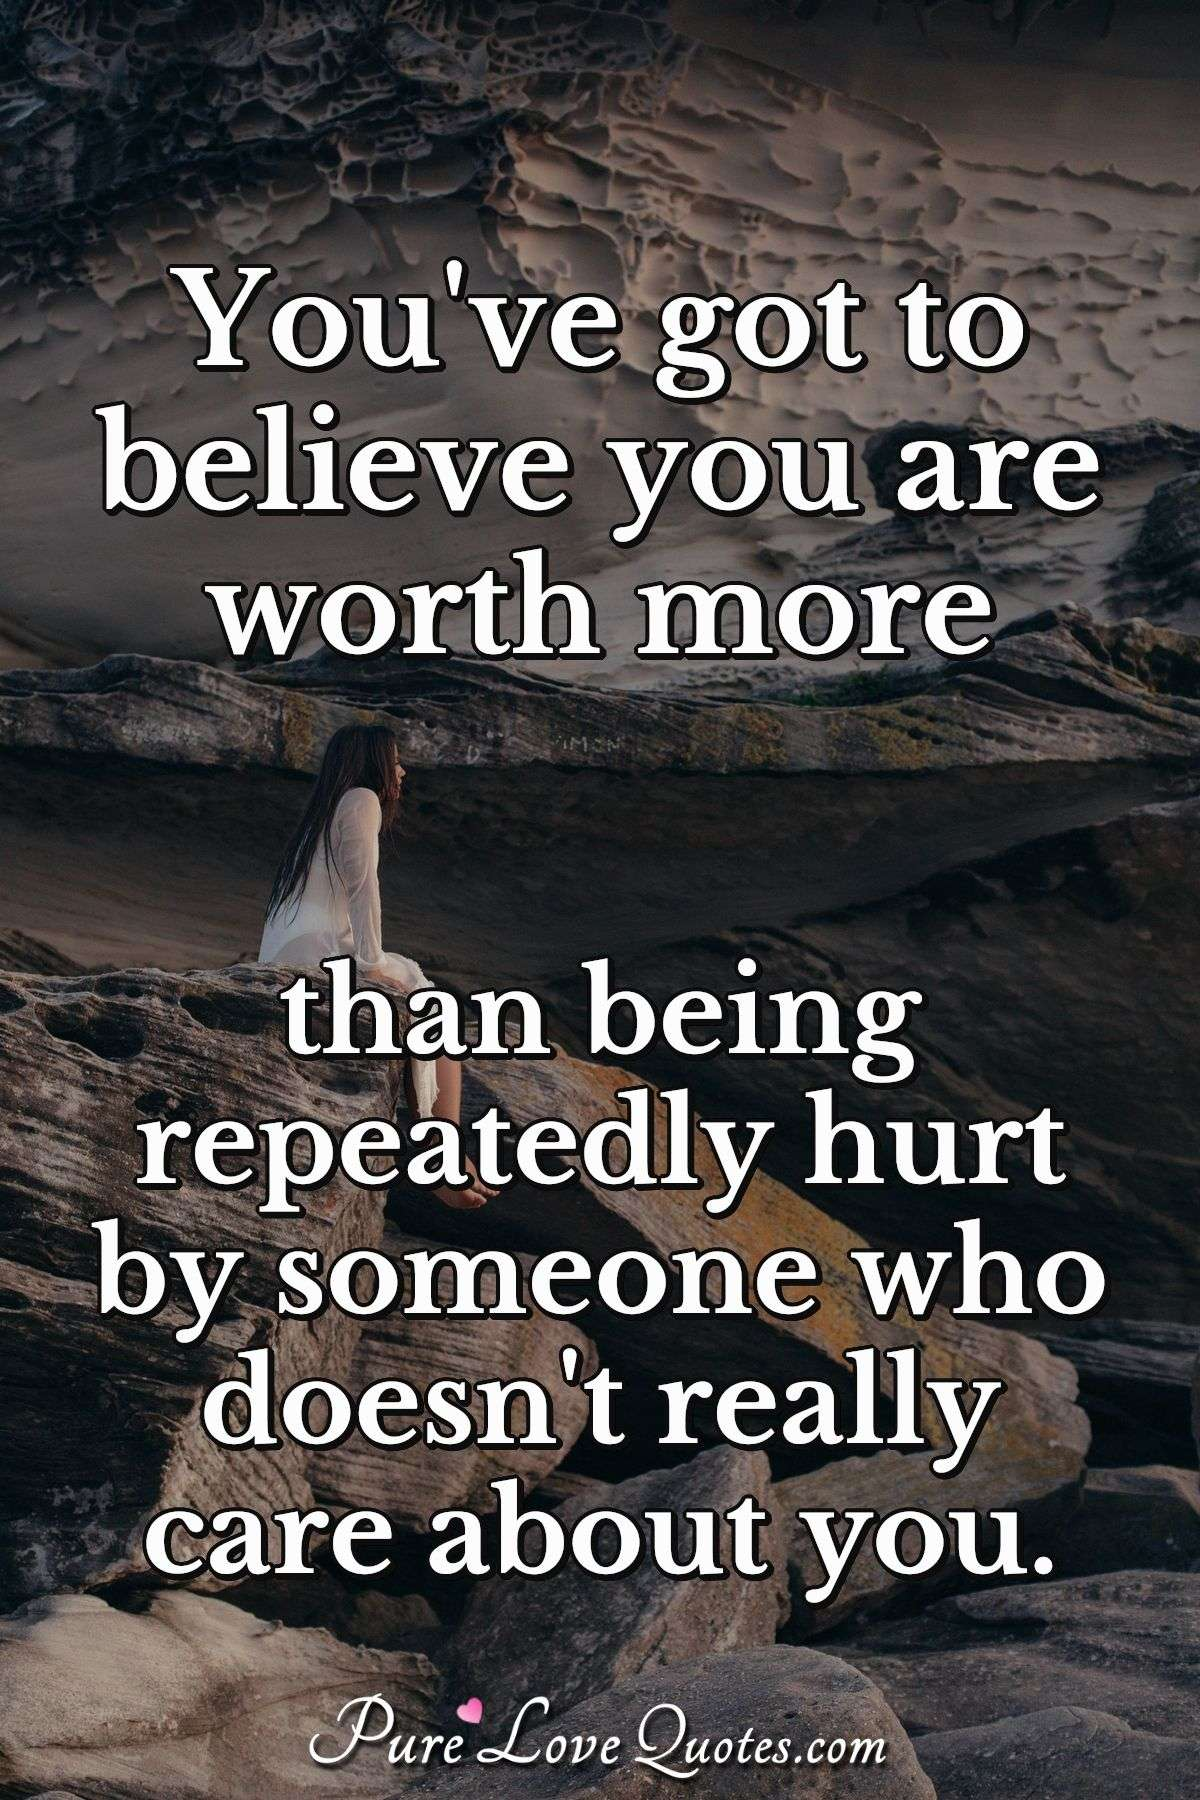 You've got to believe you are worth more than being repeatedly hurt by someone who doesn't really care about you. - Anonymous